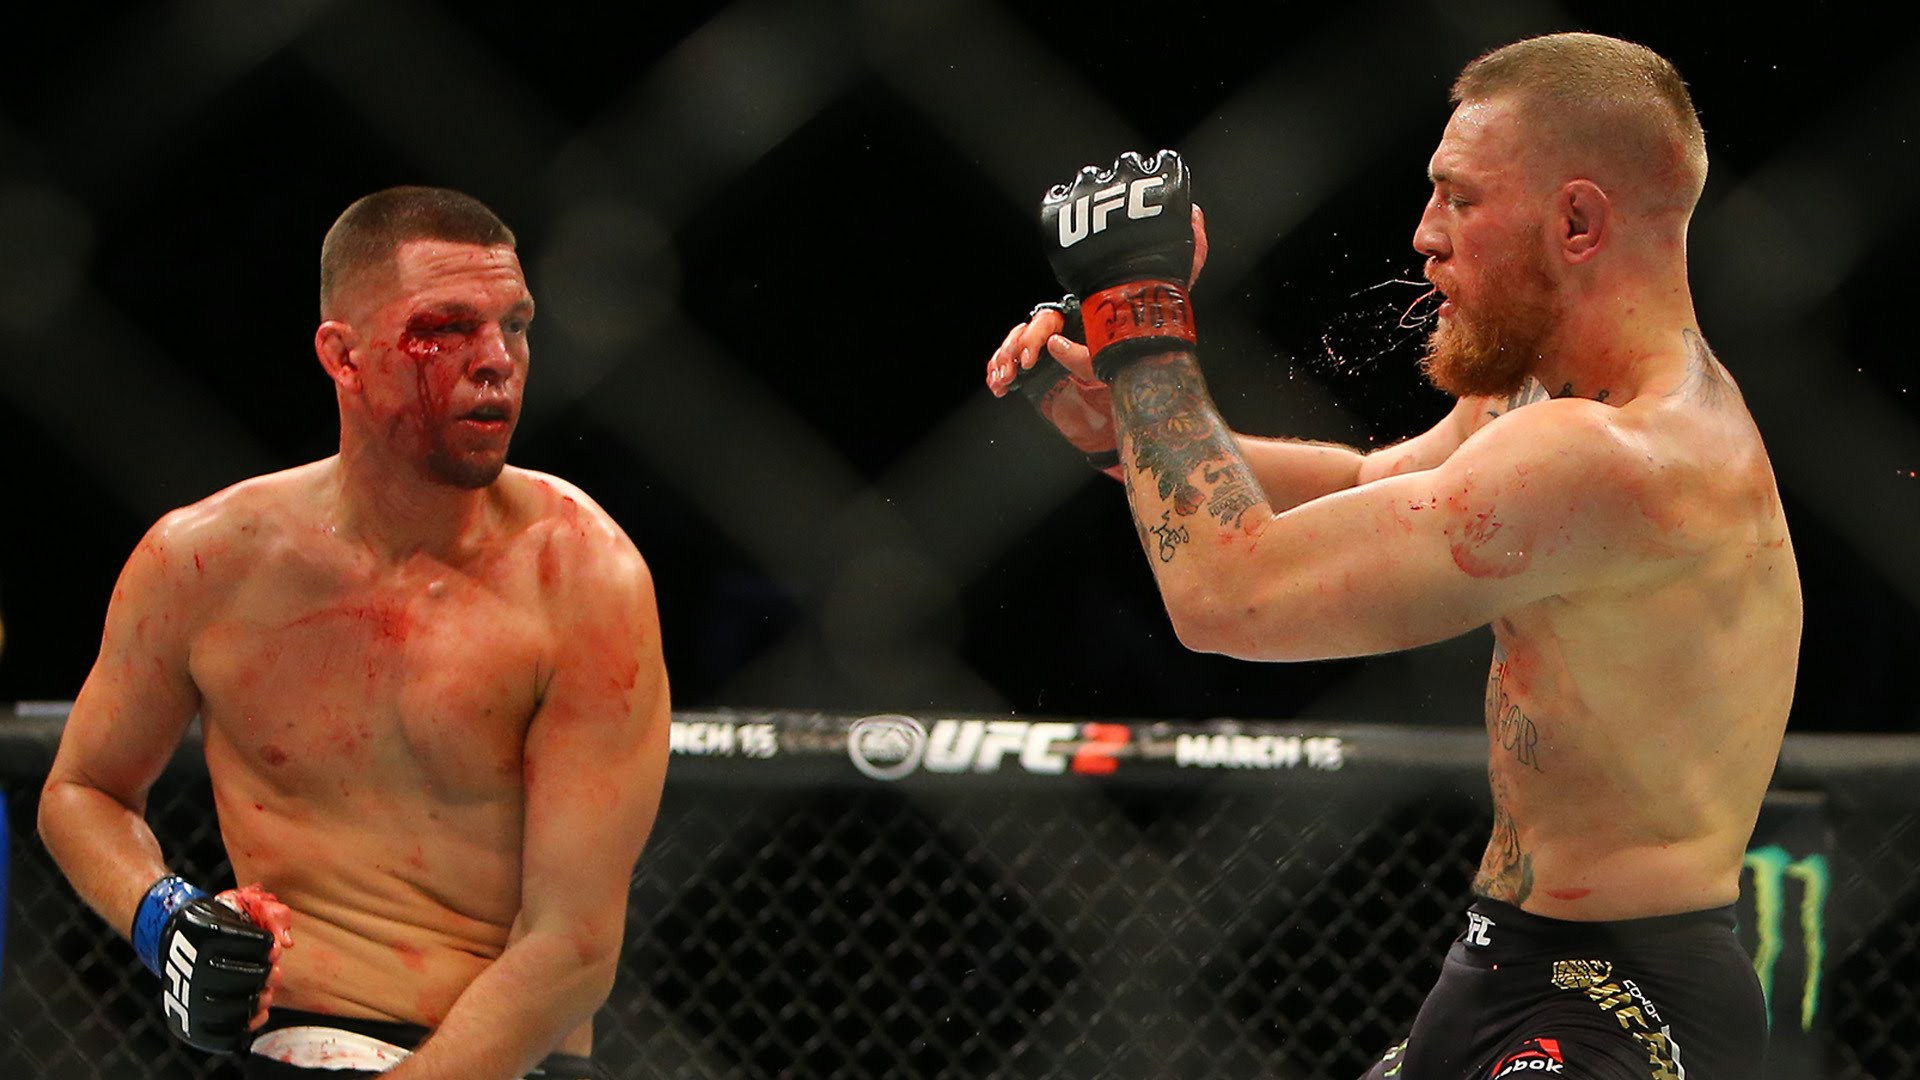 nate diaz wallpapers images photos pictures backgrounds